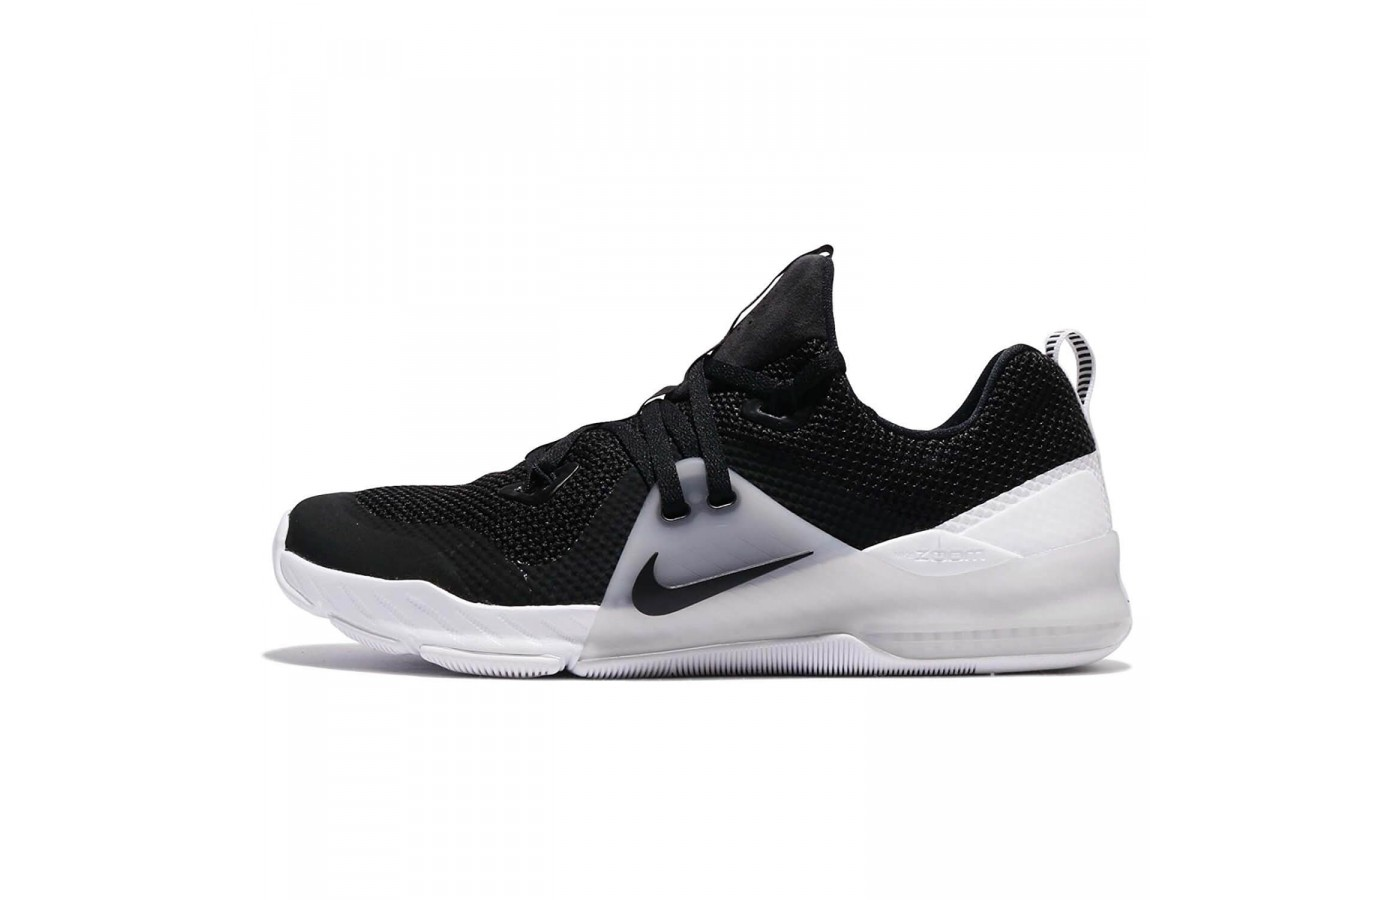 Runners love the traditional Nike Zoom cushioning in the midsole